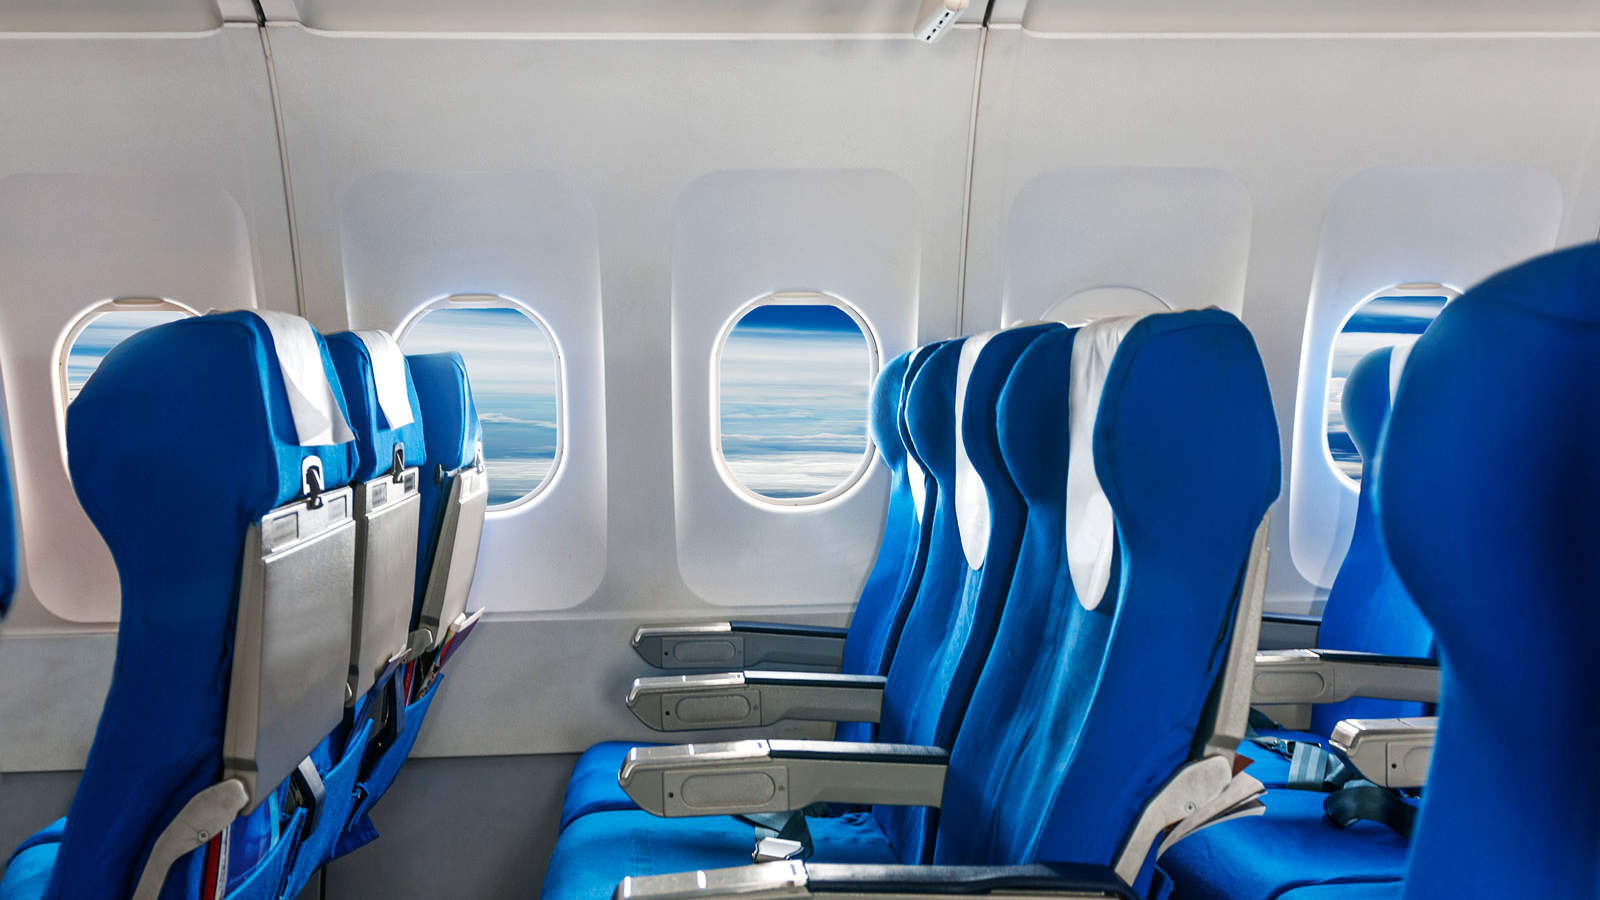 Picking This Seat on a Flight Means You're Selfish, Psychologists Say